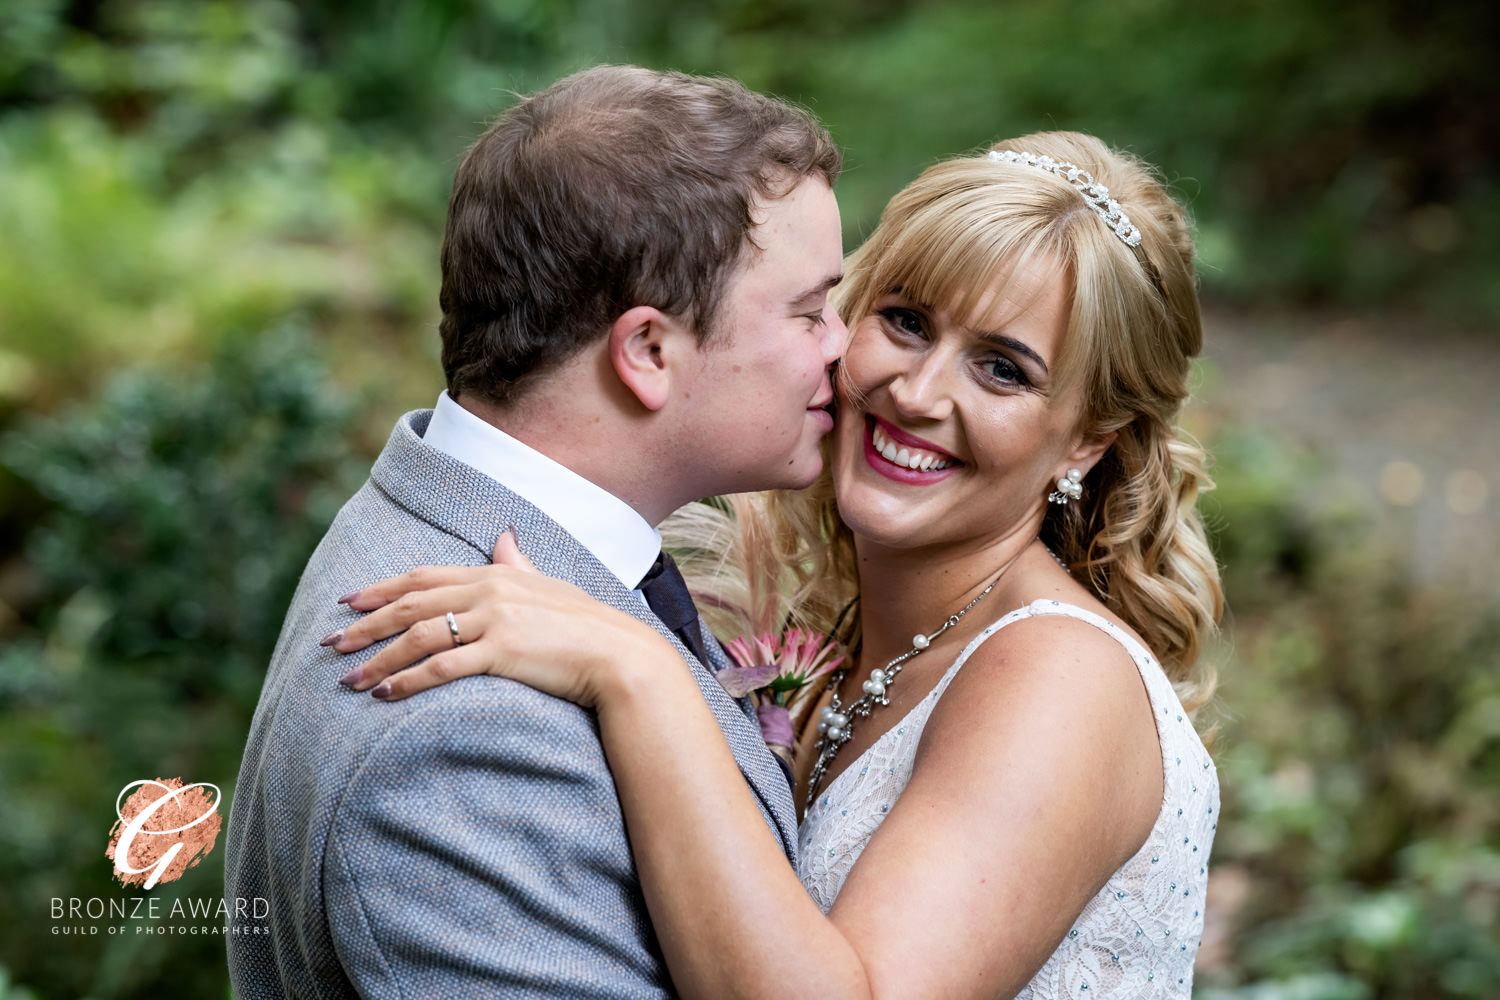 an award winning photograph of a groom kissing his bride while she smiles